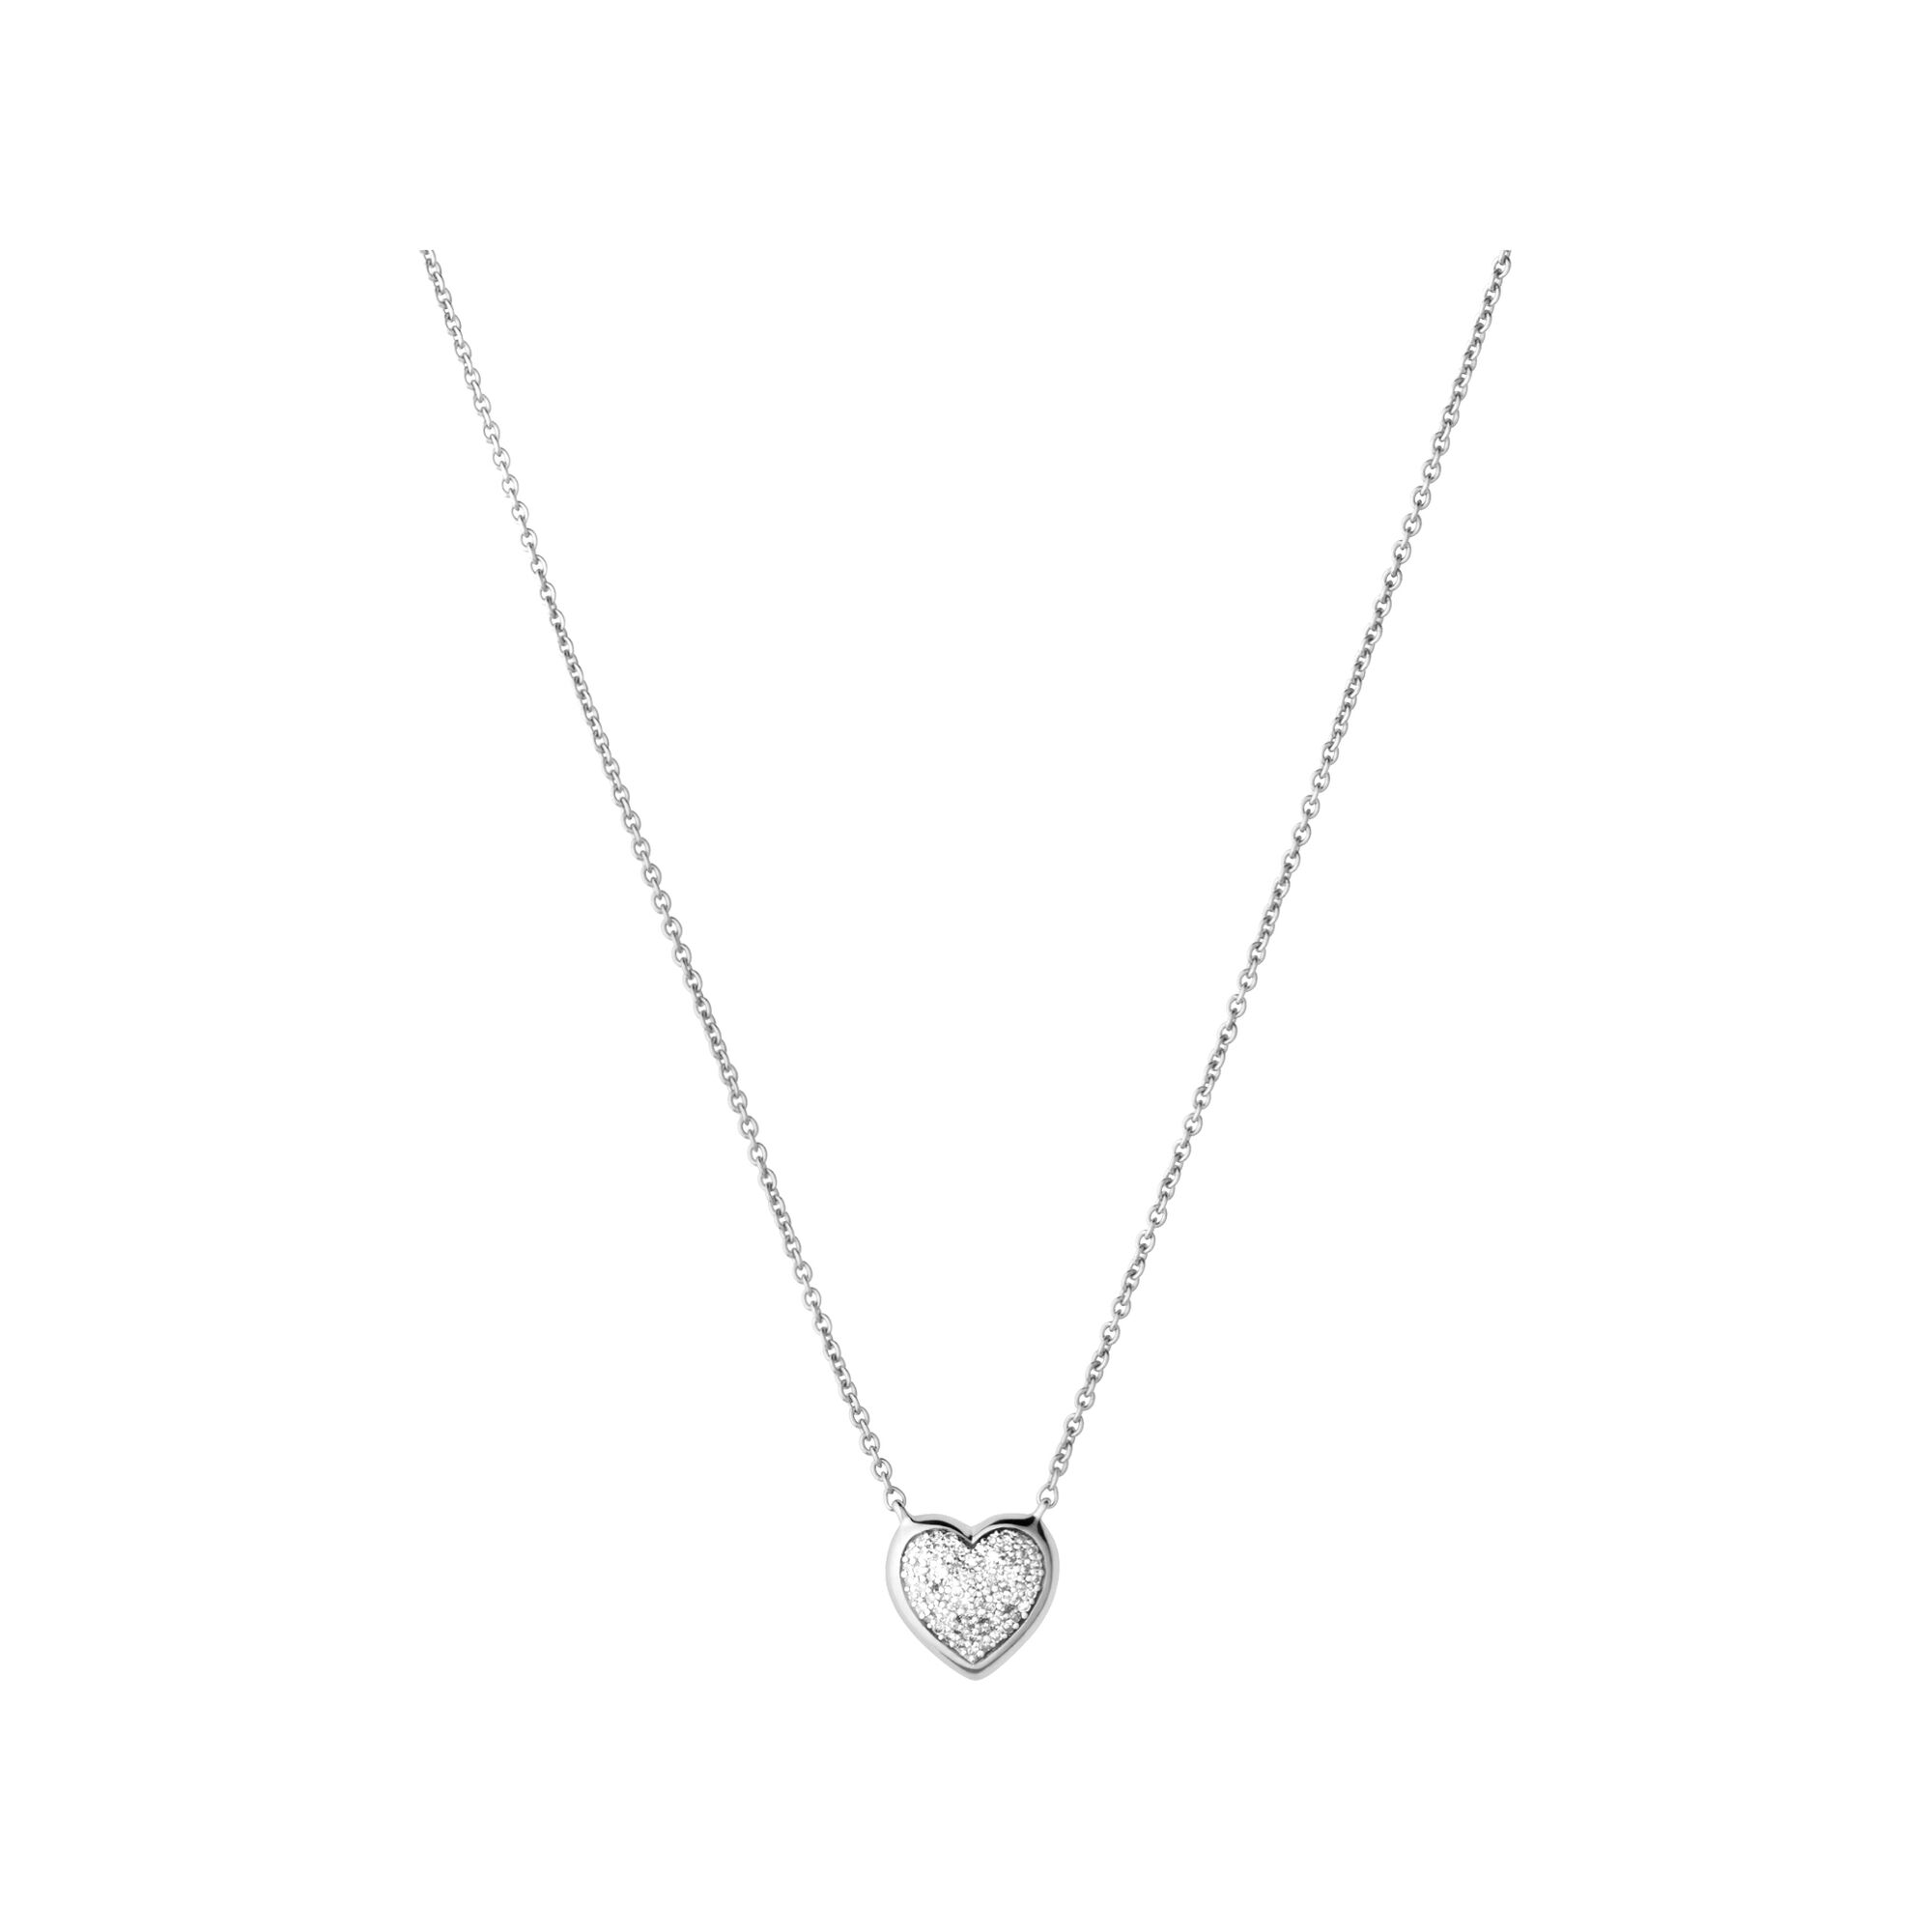 Diamond essentials silver pave heart necklace links of london diamond essentials sterling silver amp pave heart necklace hires aloadofball Gallery